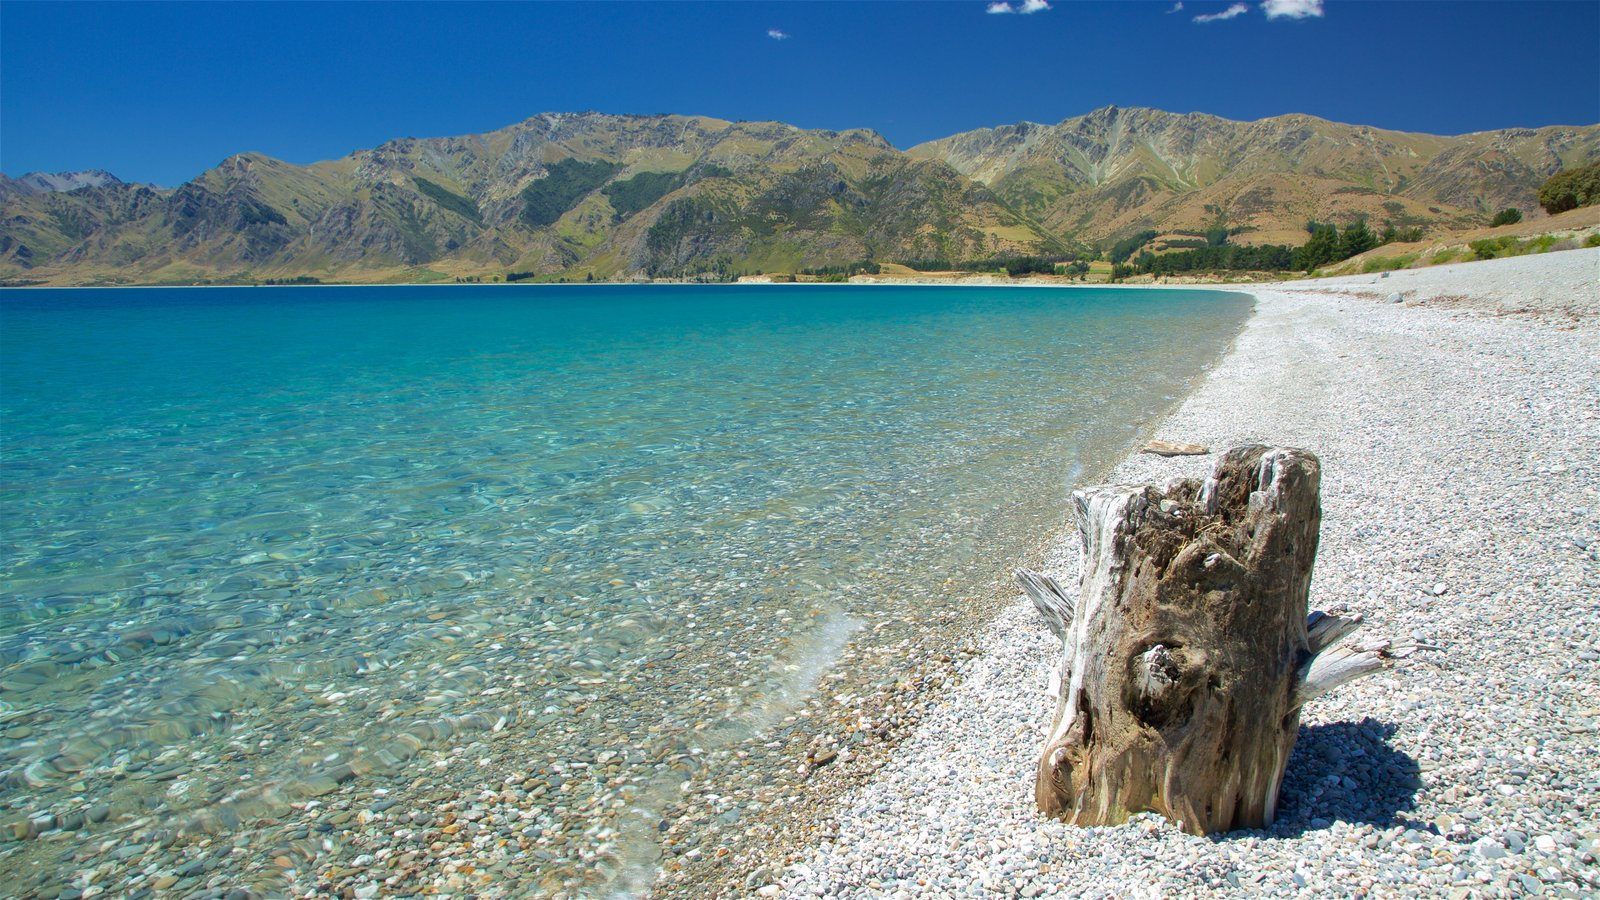 Lake Hawea showing mountains, a lake or waterhole and a pebble beach